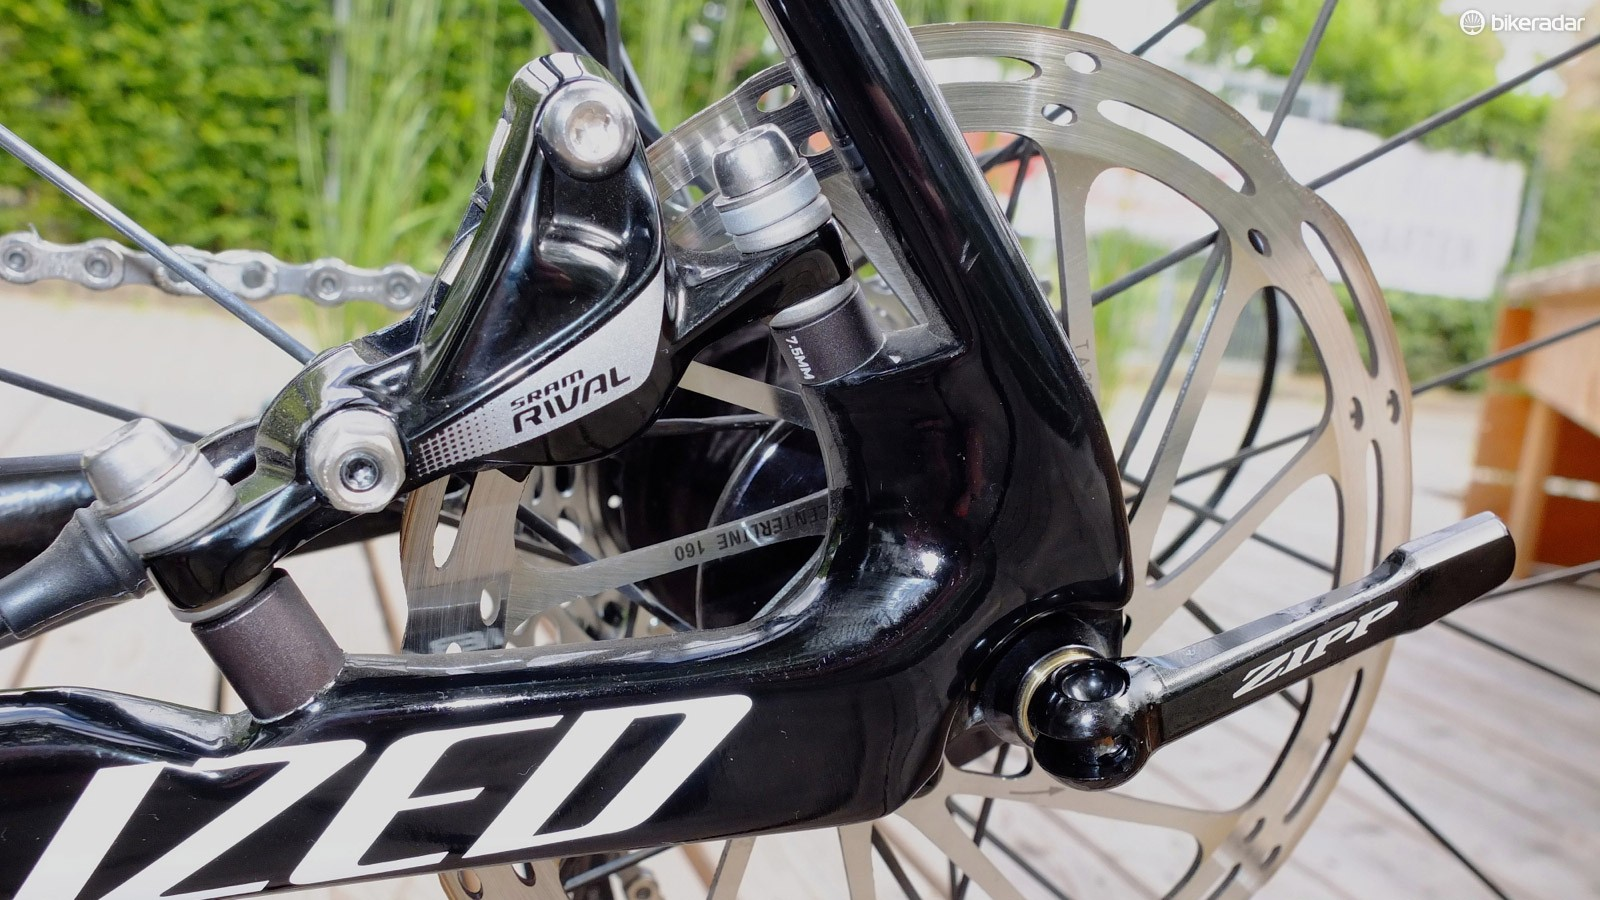 SRAM recommends 160mm rotors for the road, and 140mm for cyclocross